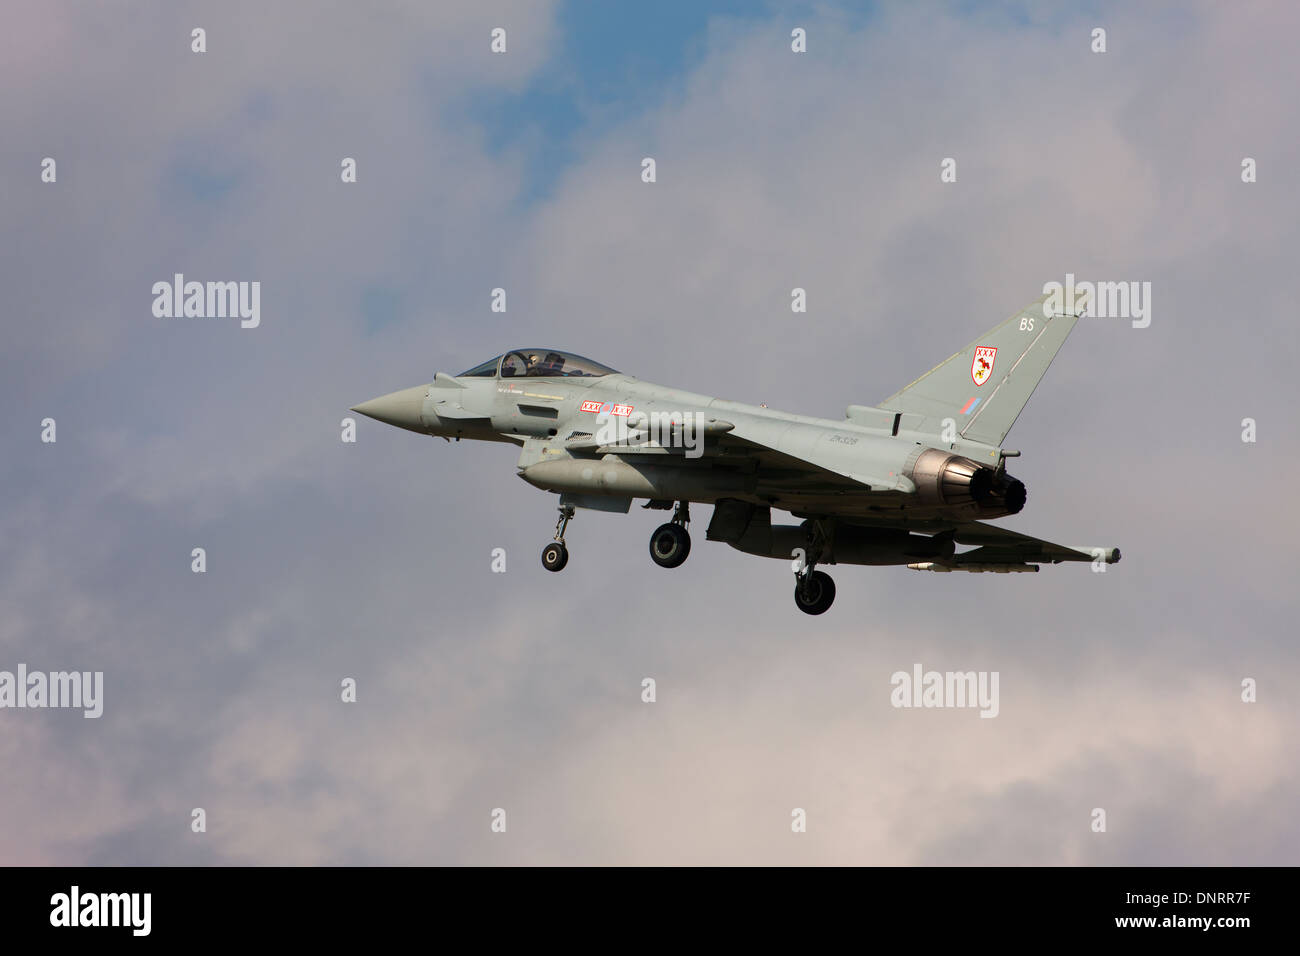 Eurofighter Typhoon FGR4  ZK328 on final approach to land - Stock Image